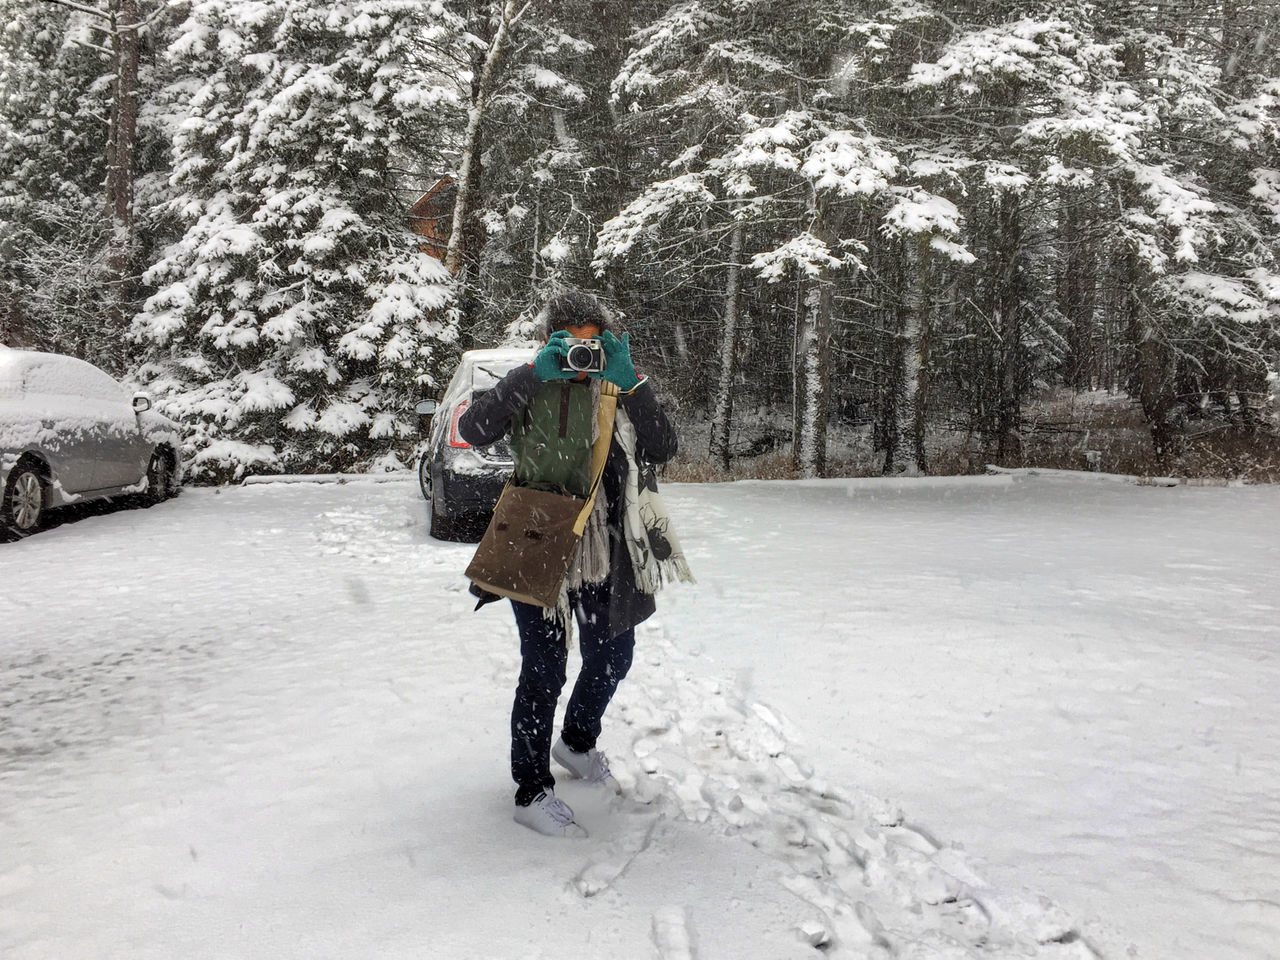 snow, winter, cold temperature, weather, walking, nature, full length, one person, backpack, warm clothing, day, outdoors, mature men, frozen, snowing, tree, adventure, real people, scenics, beauty in nature, one man only, mountain, only men, adults only, adult, people